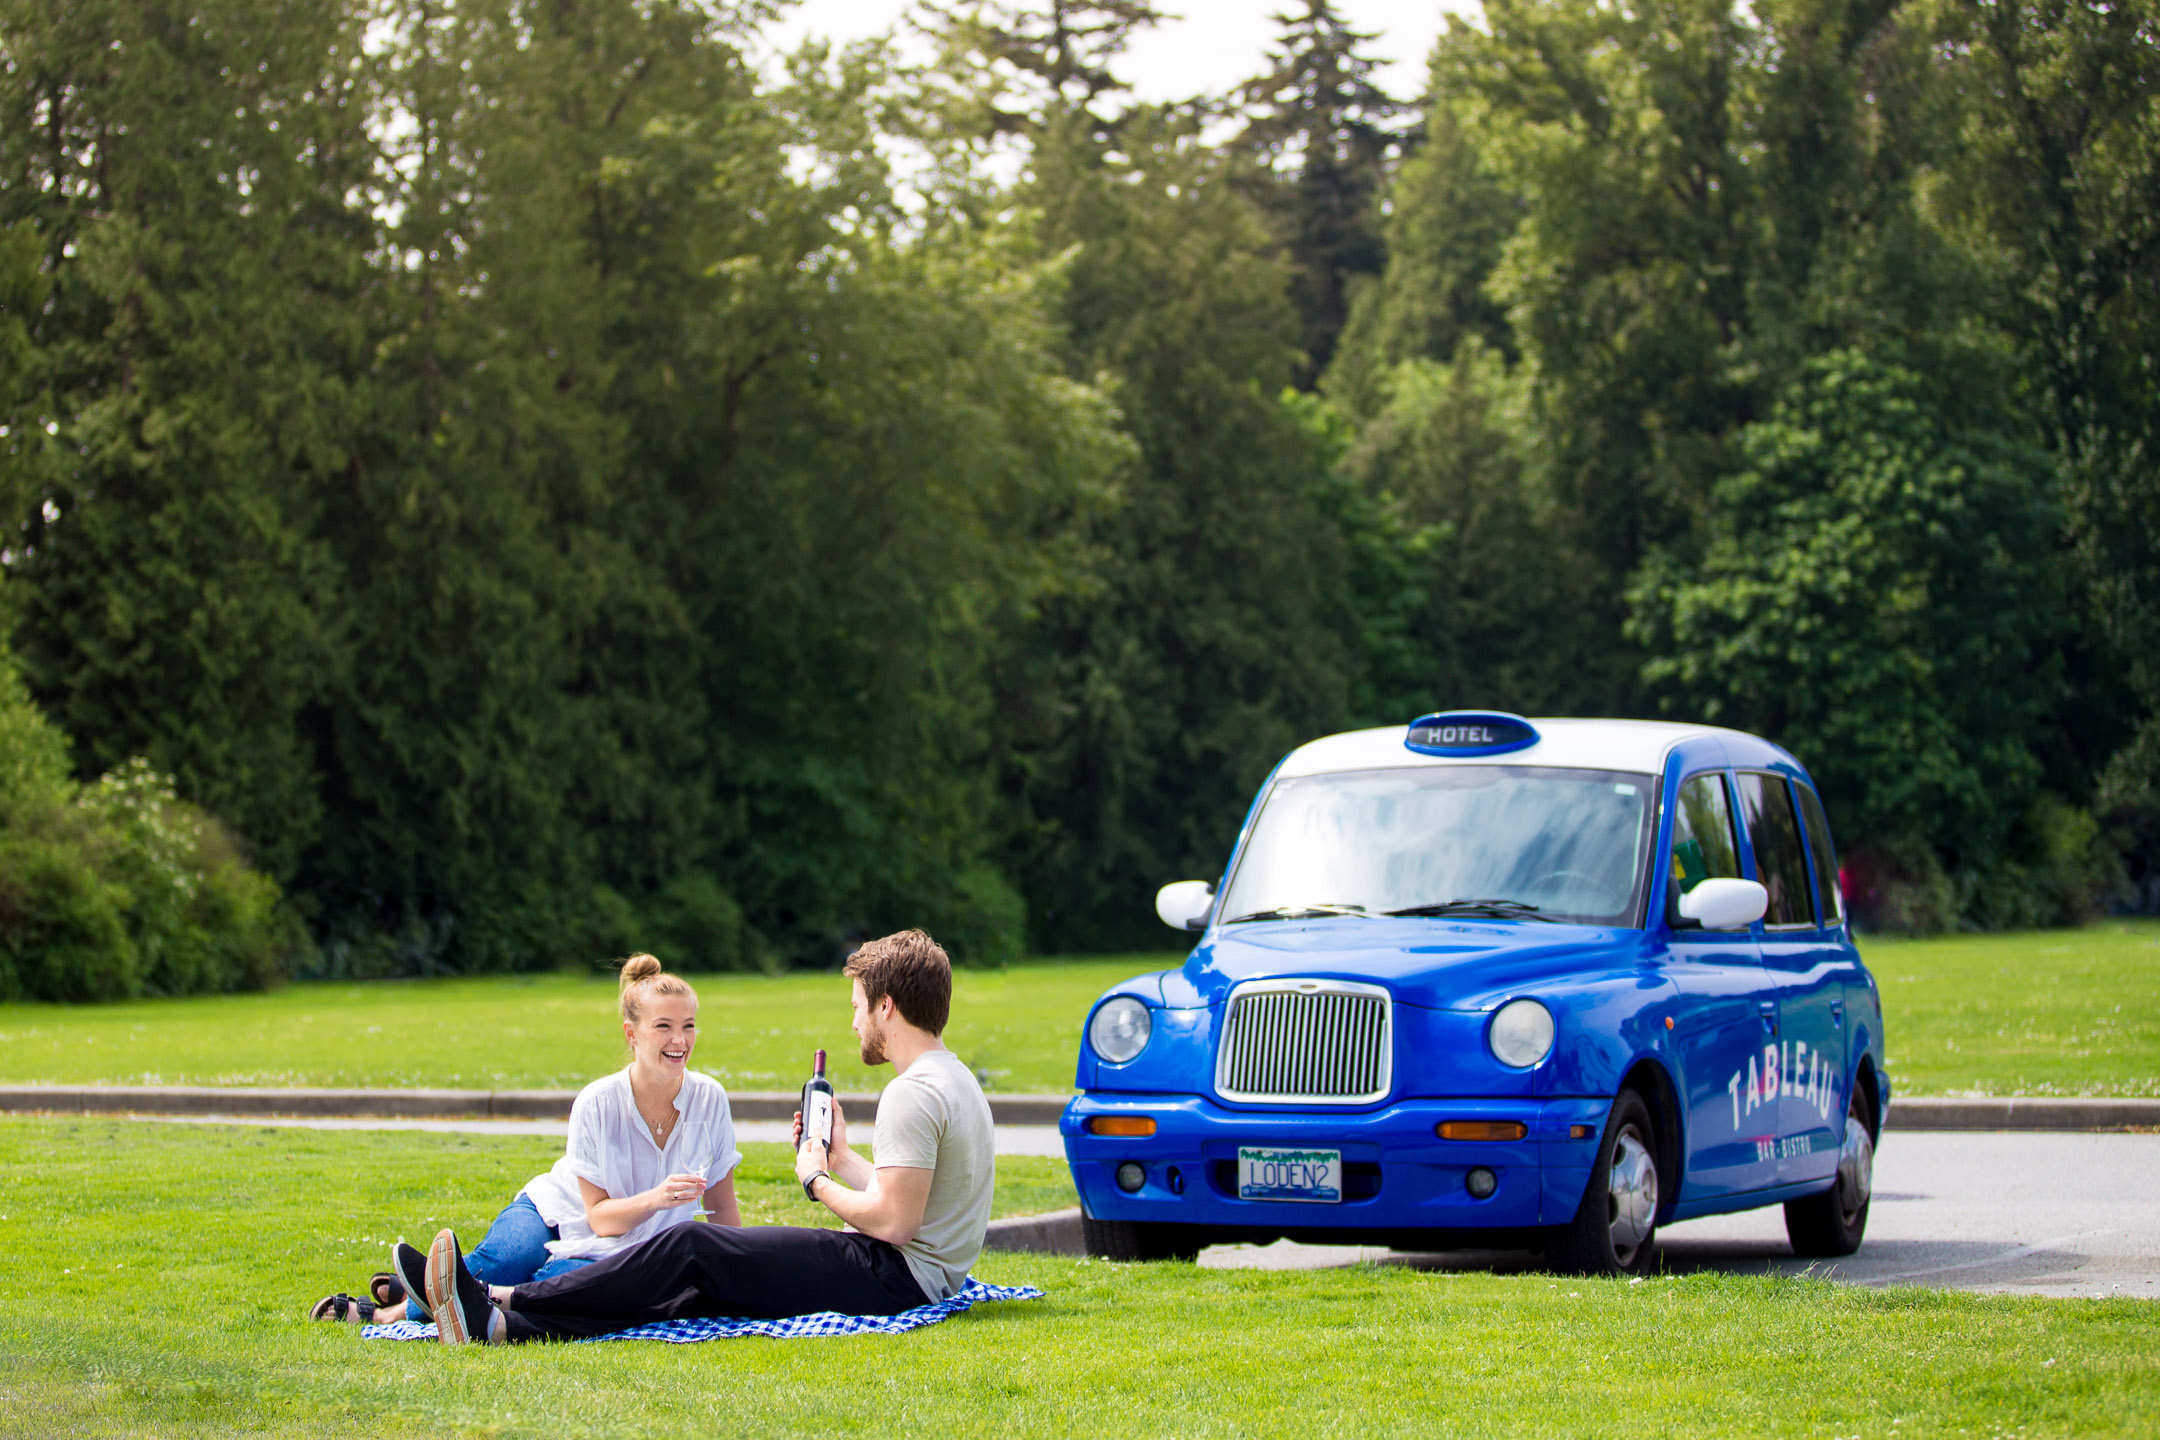 Tableau Car Picnic at Stanley Park